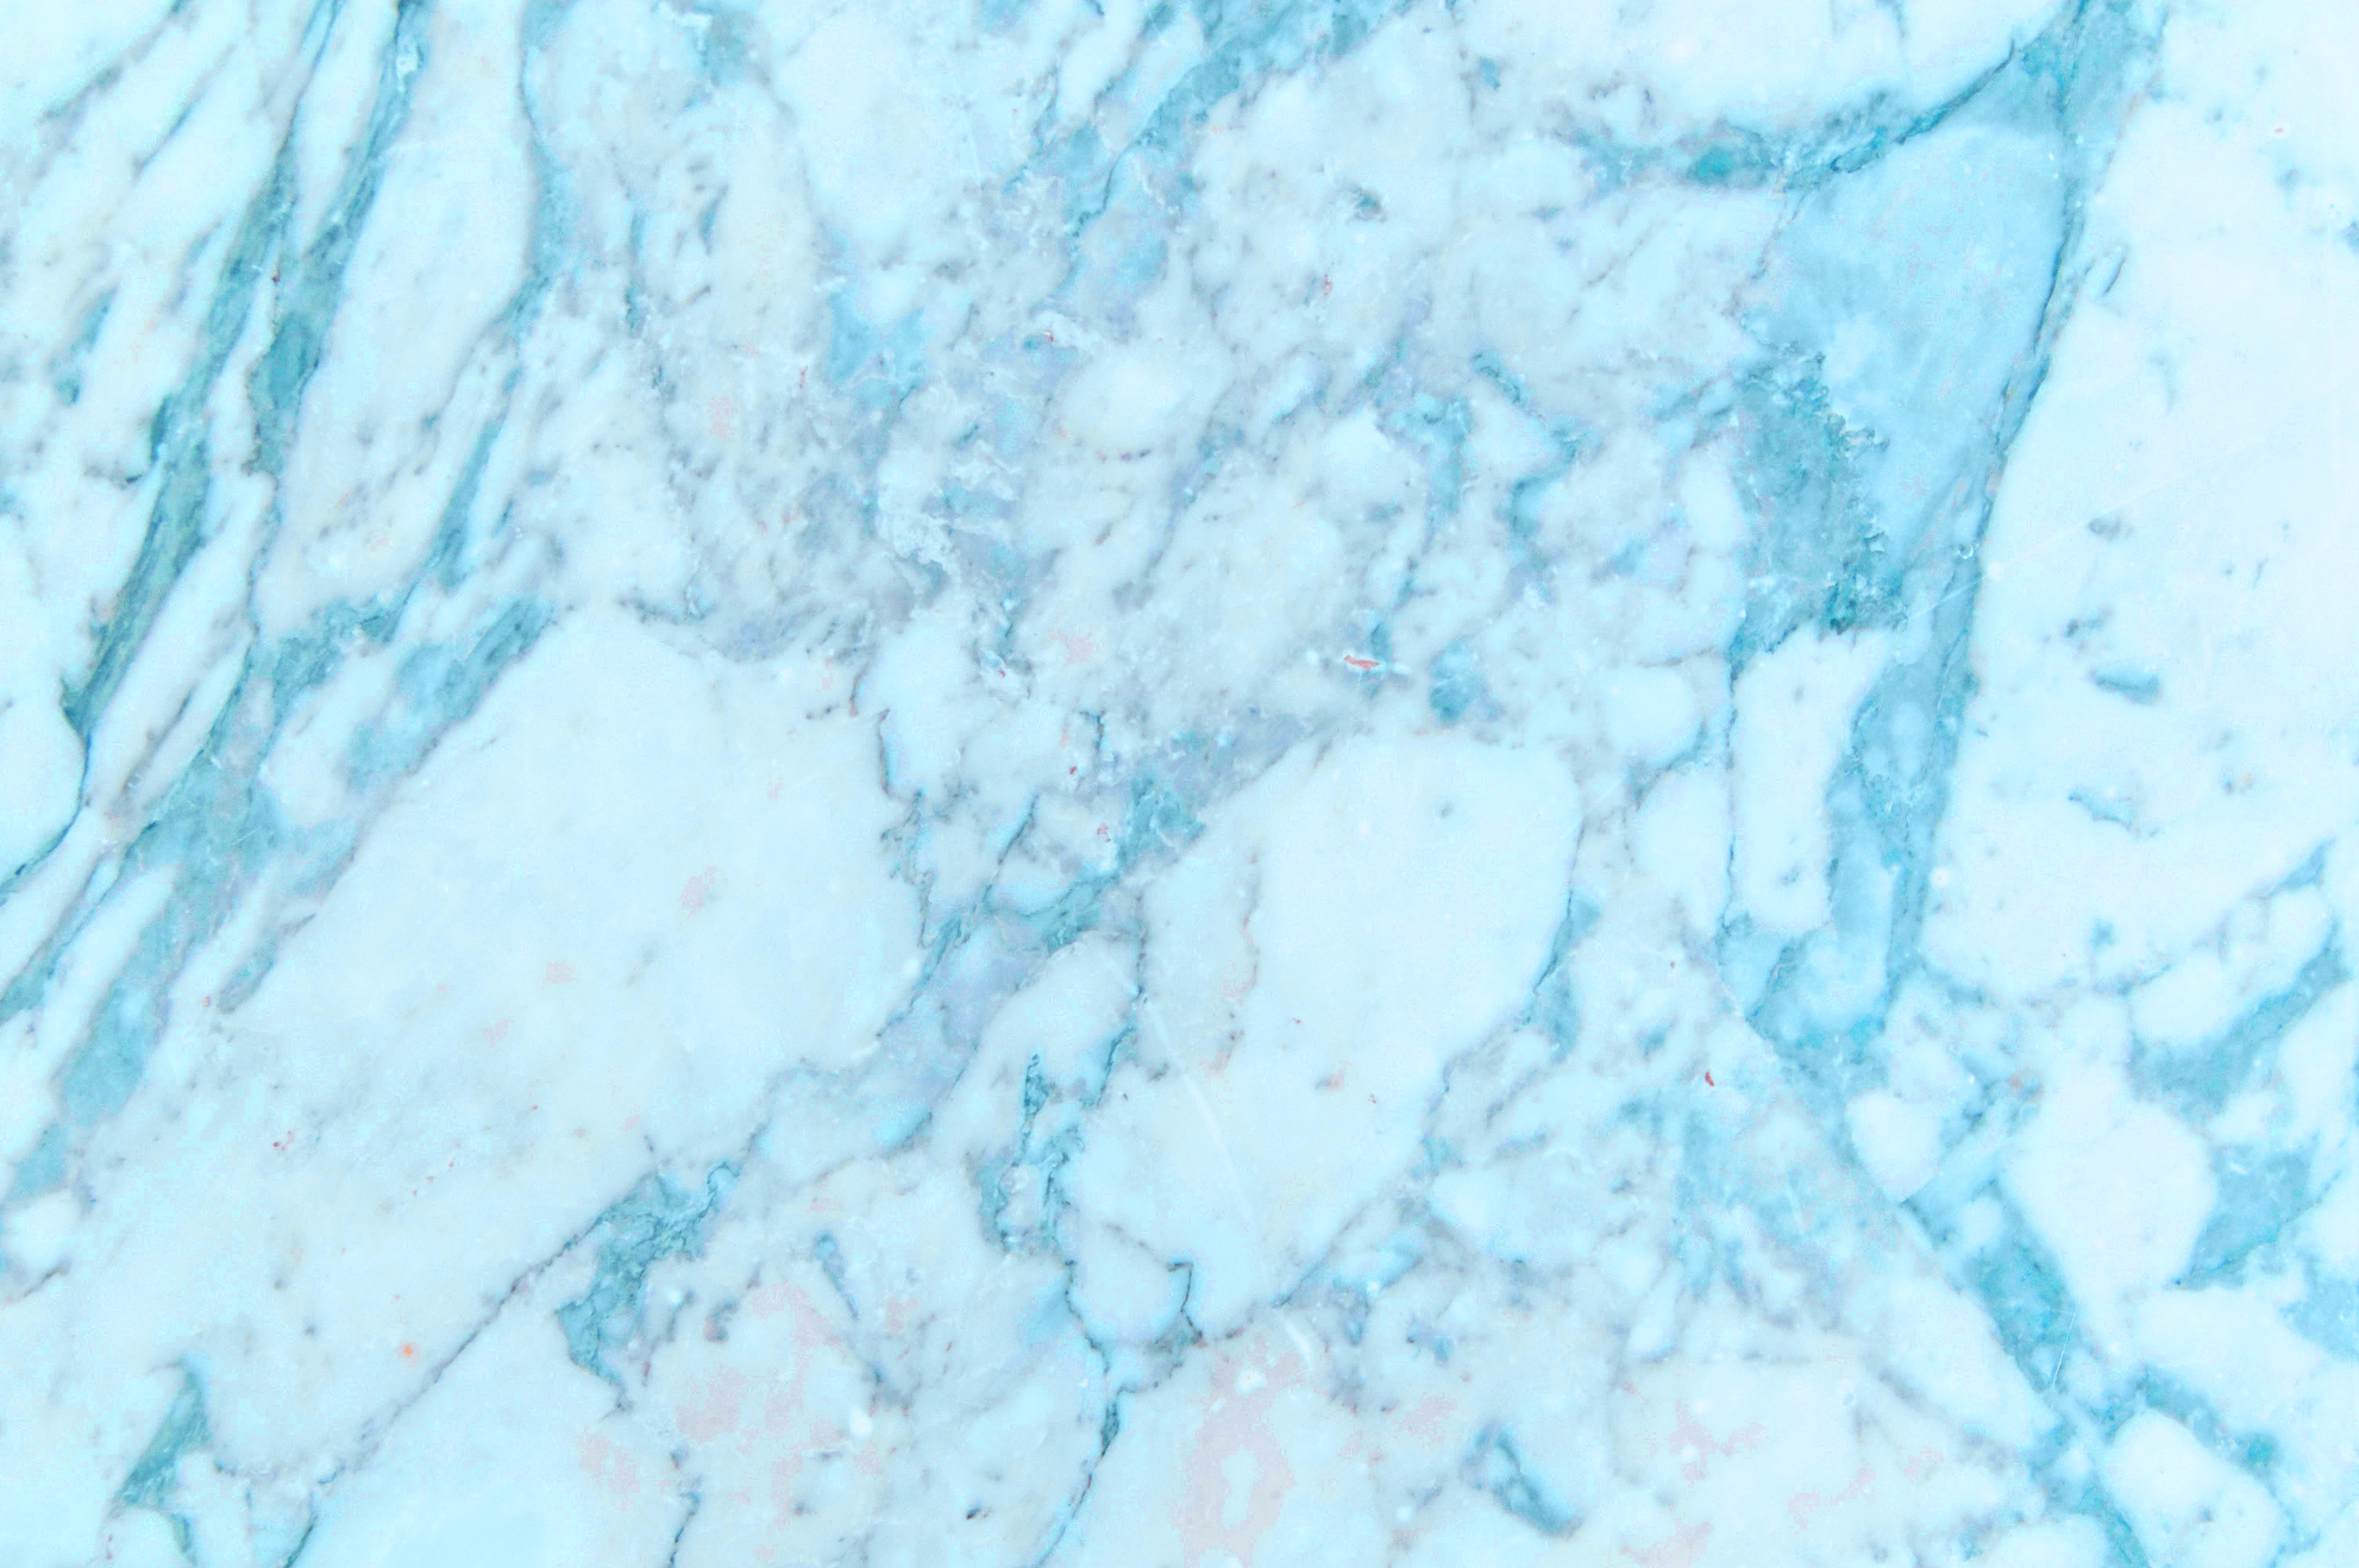 FREE DOWNLOADS The Marble Collection Drifter